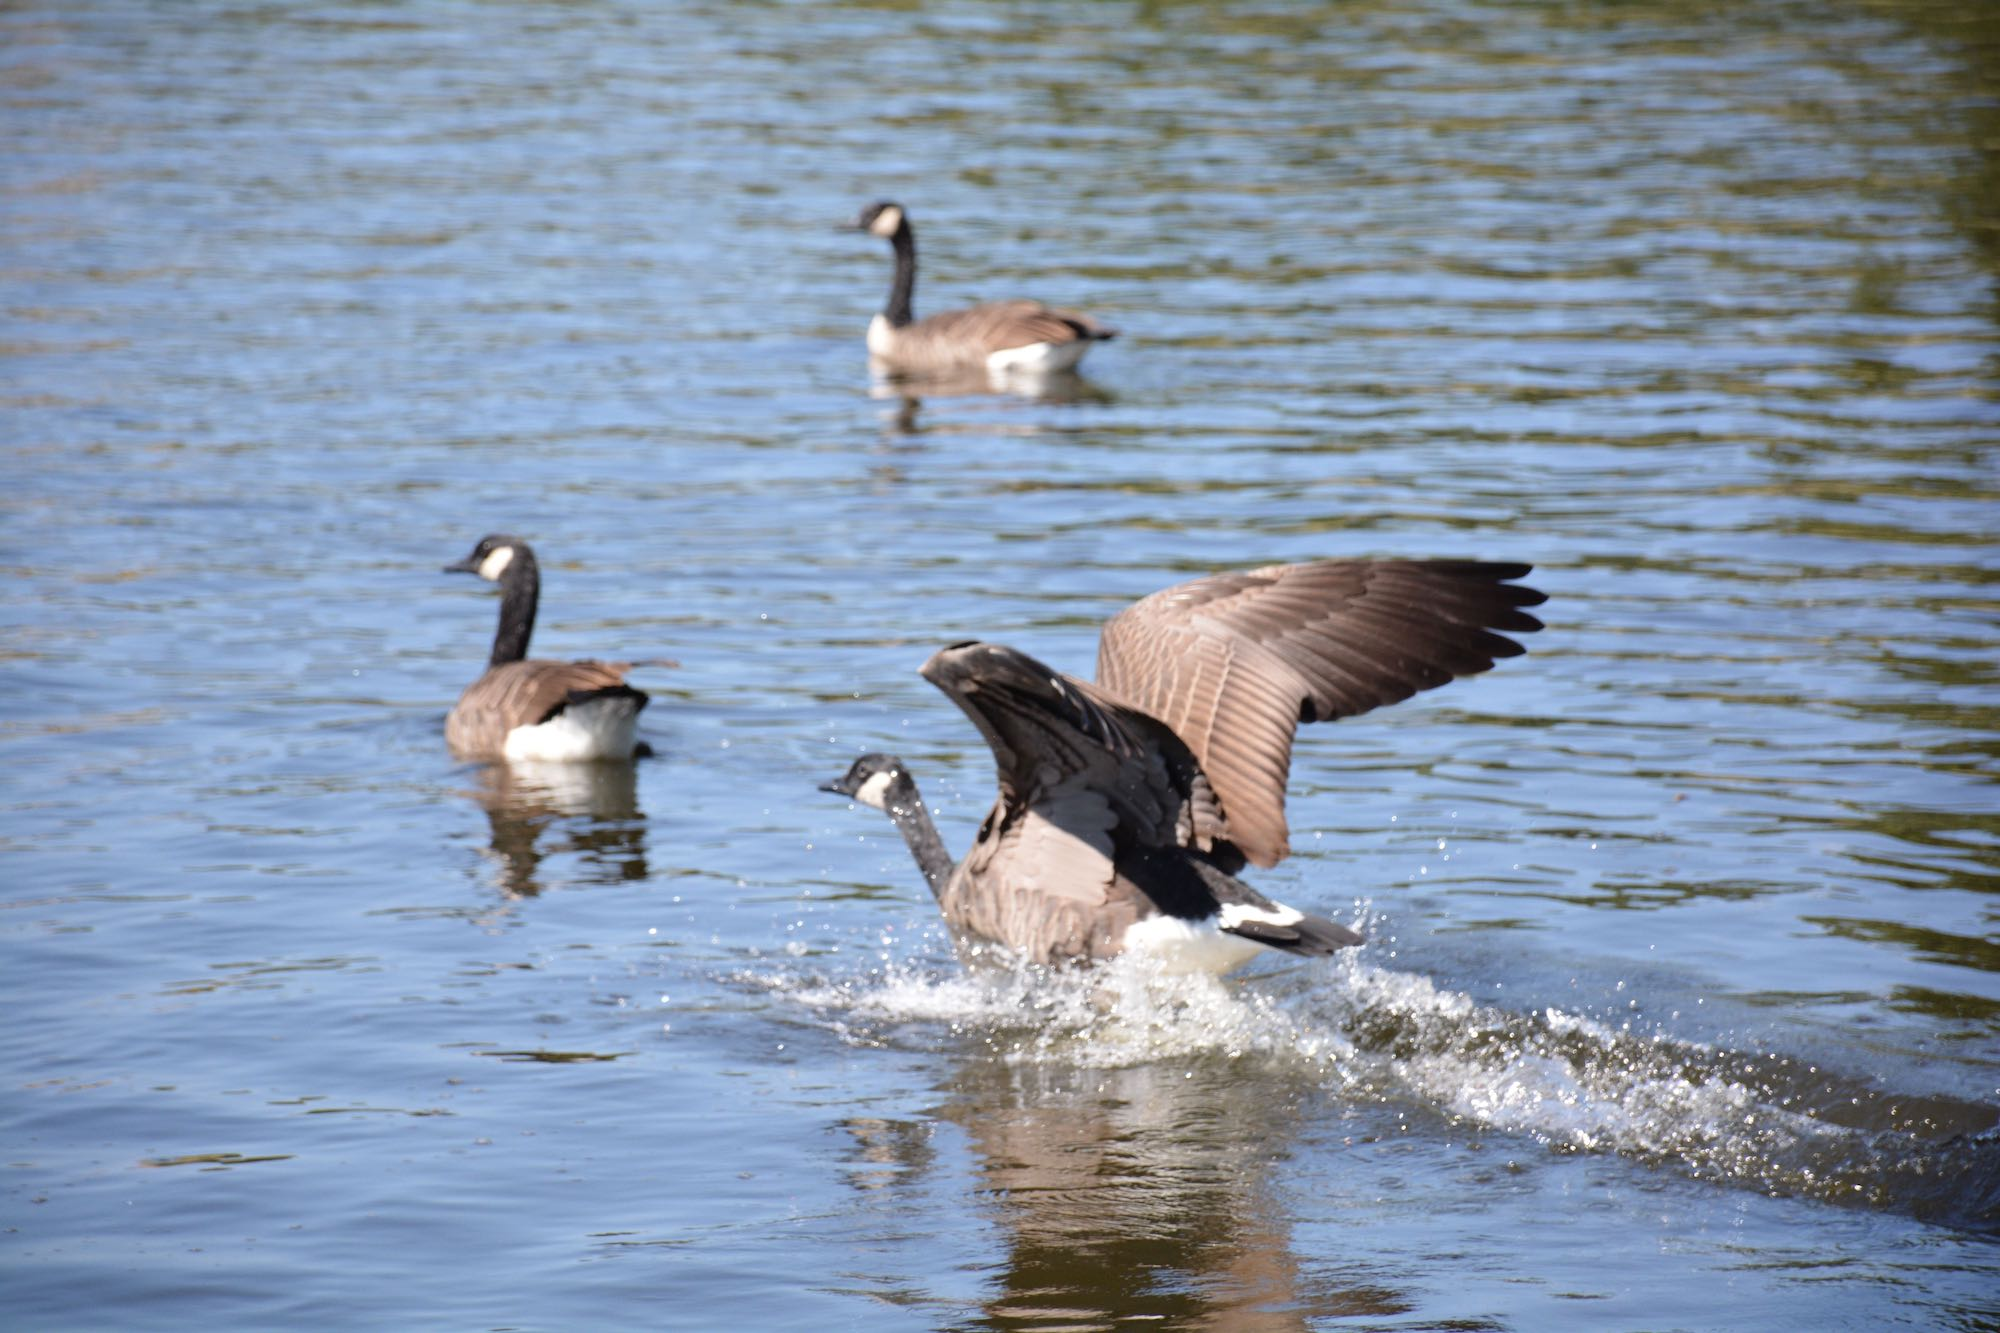 Geese in a pond.